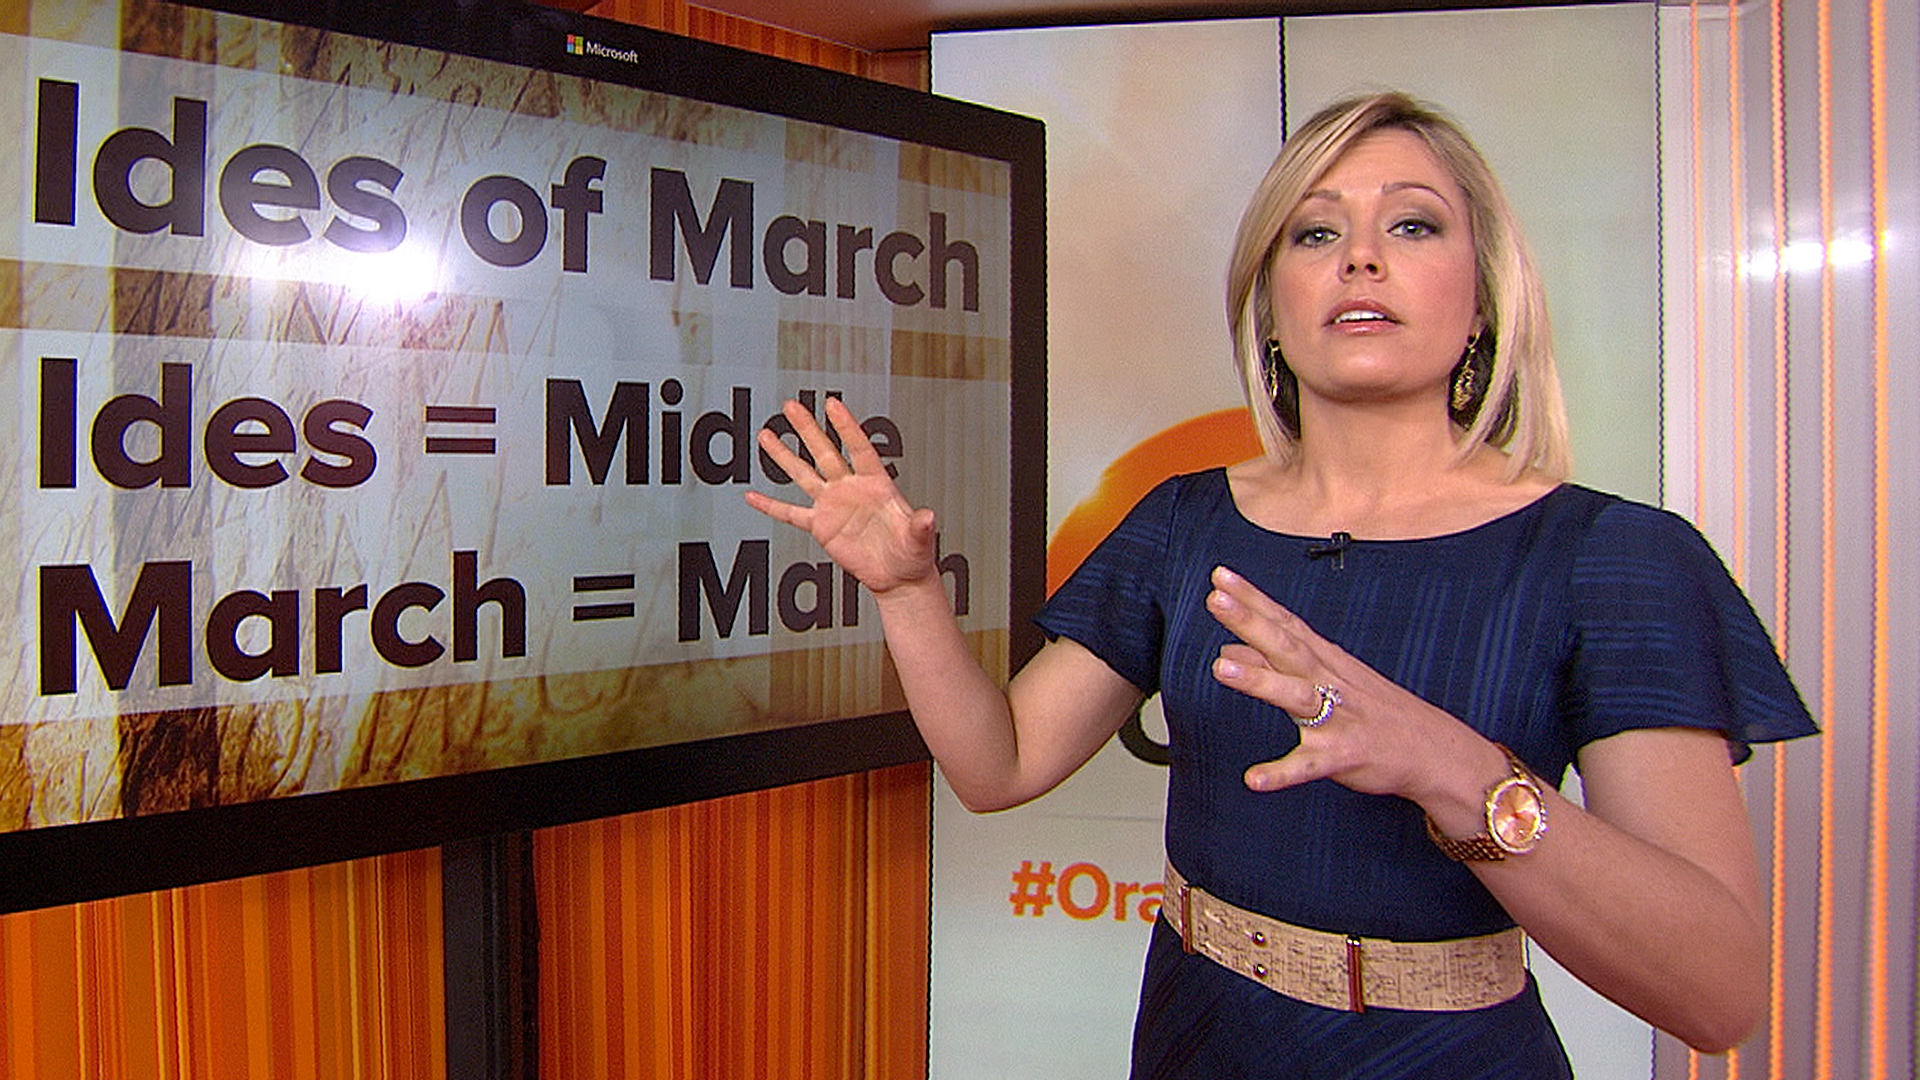 Ides Of March News: Ides Of March: Should We Really Beware?